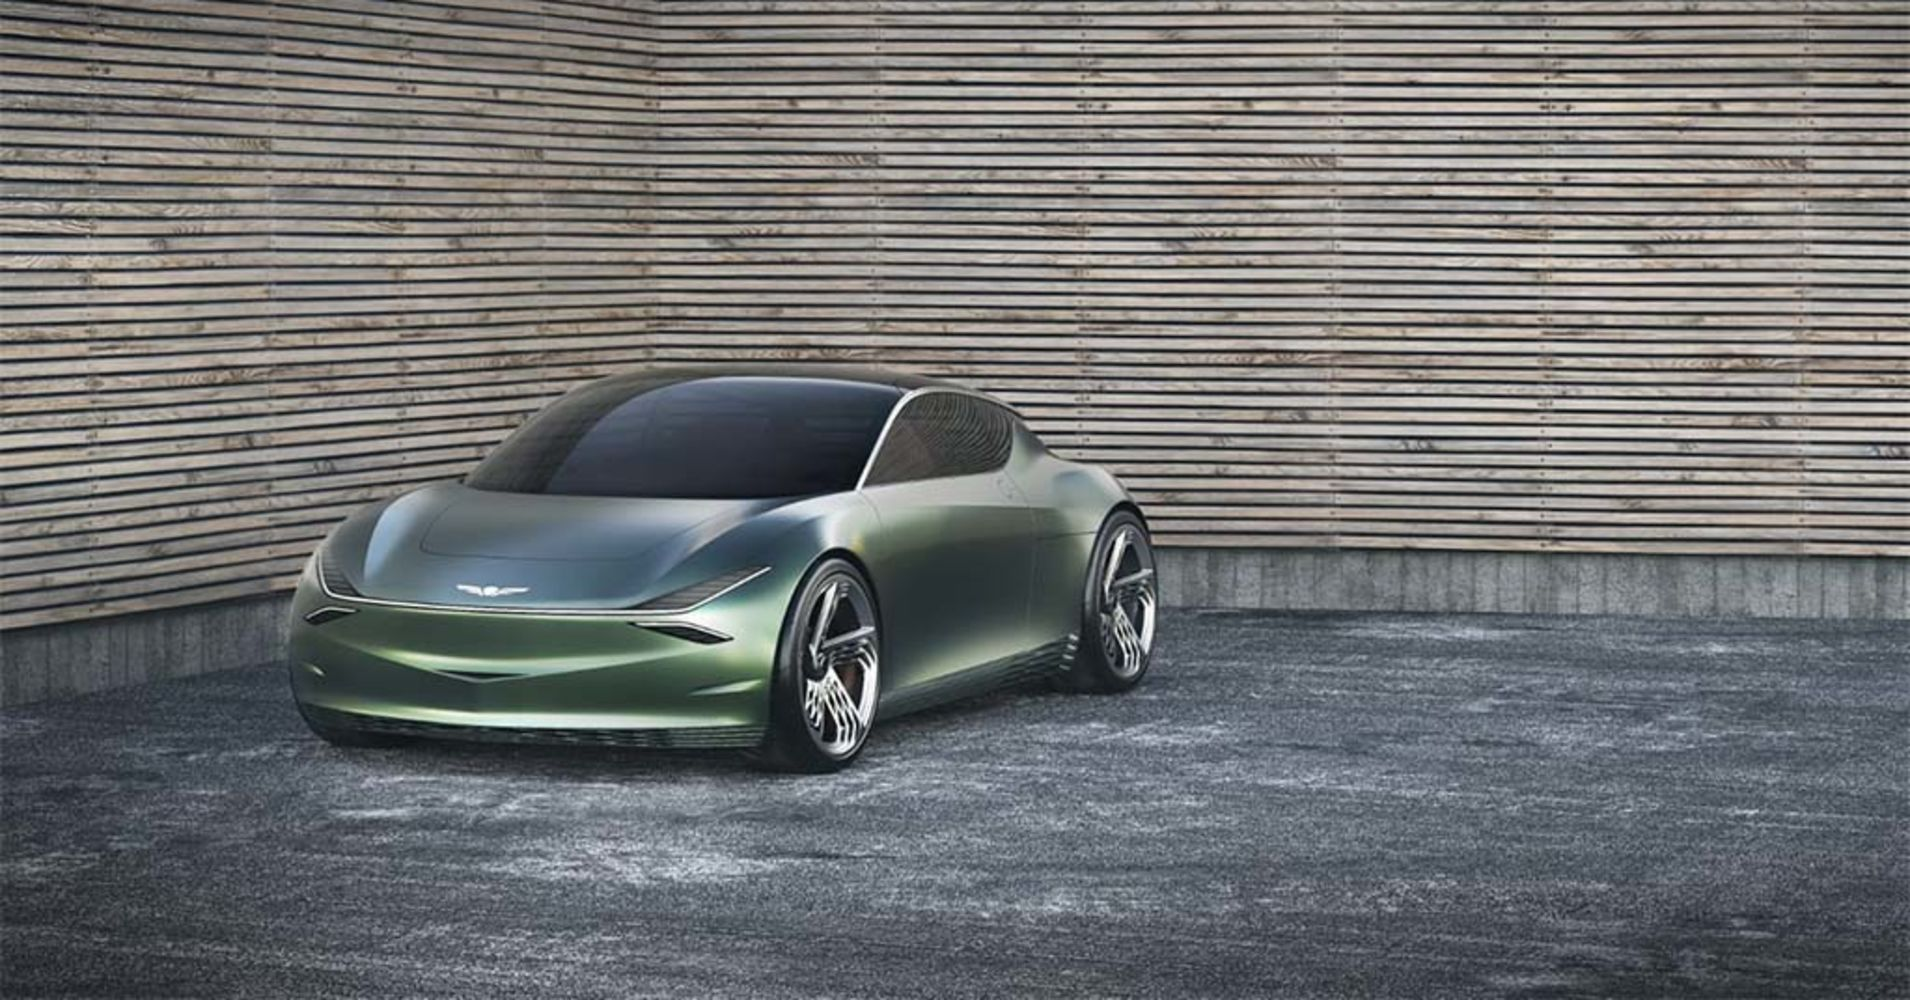 Korean carmaker Genesis debuts EV with Mint concept car at NY auto show